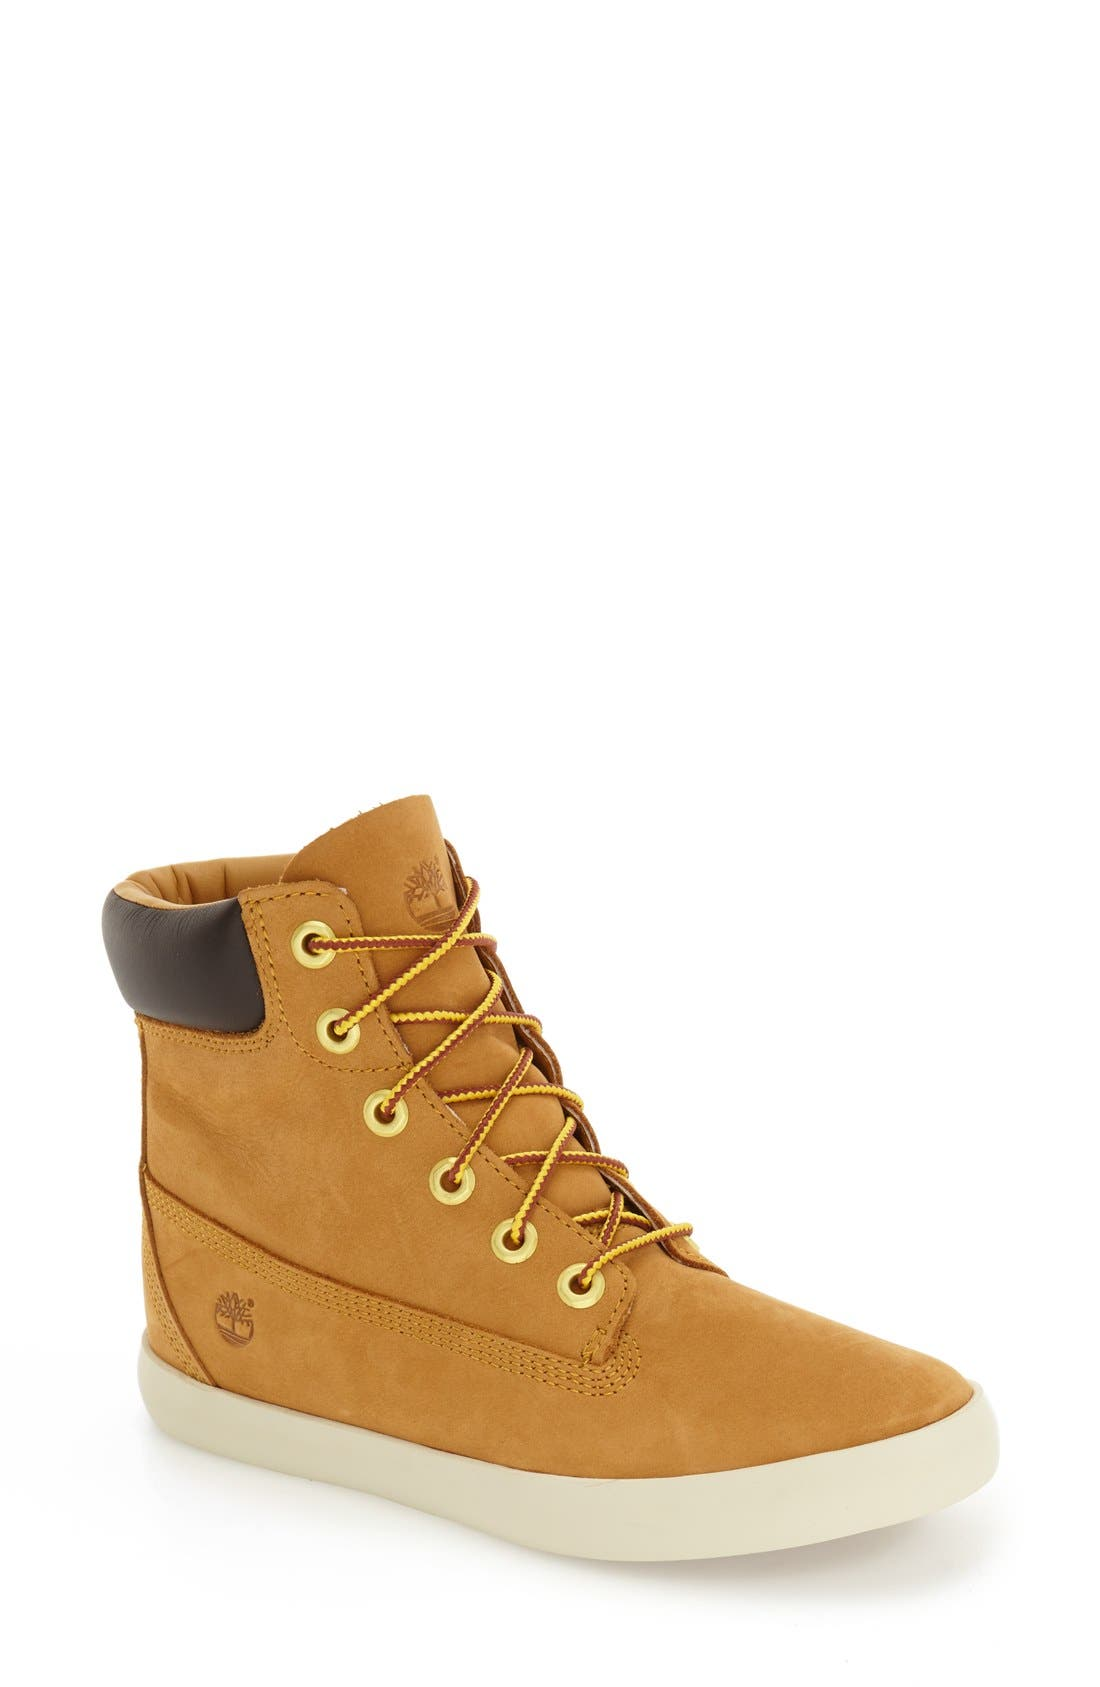 Alternate Image 1 Selected - Timberland Flannery Hidden Wedge Lug Boot (Women)